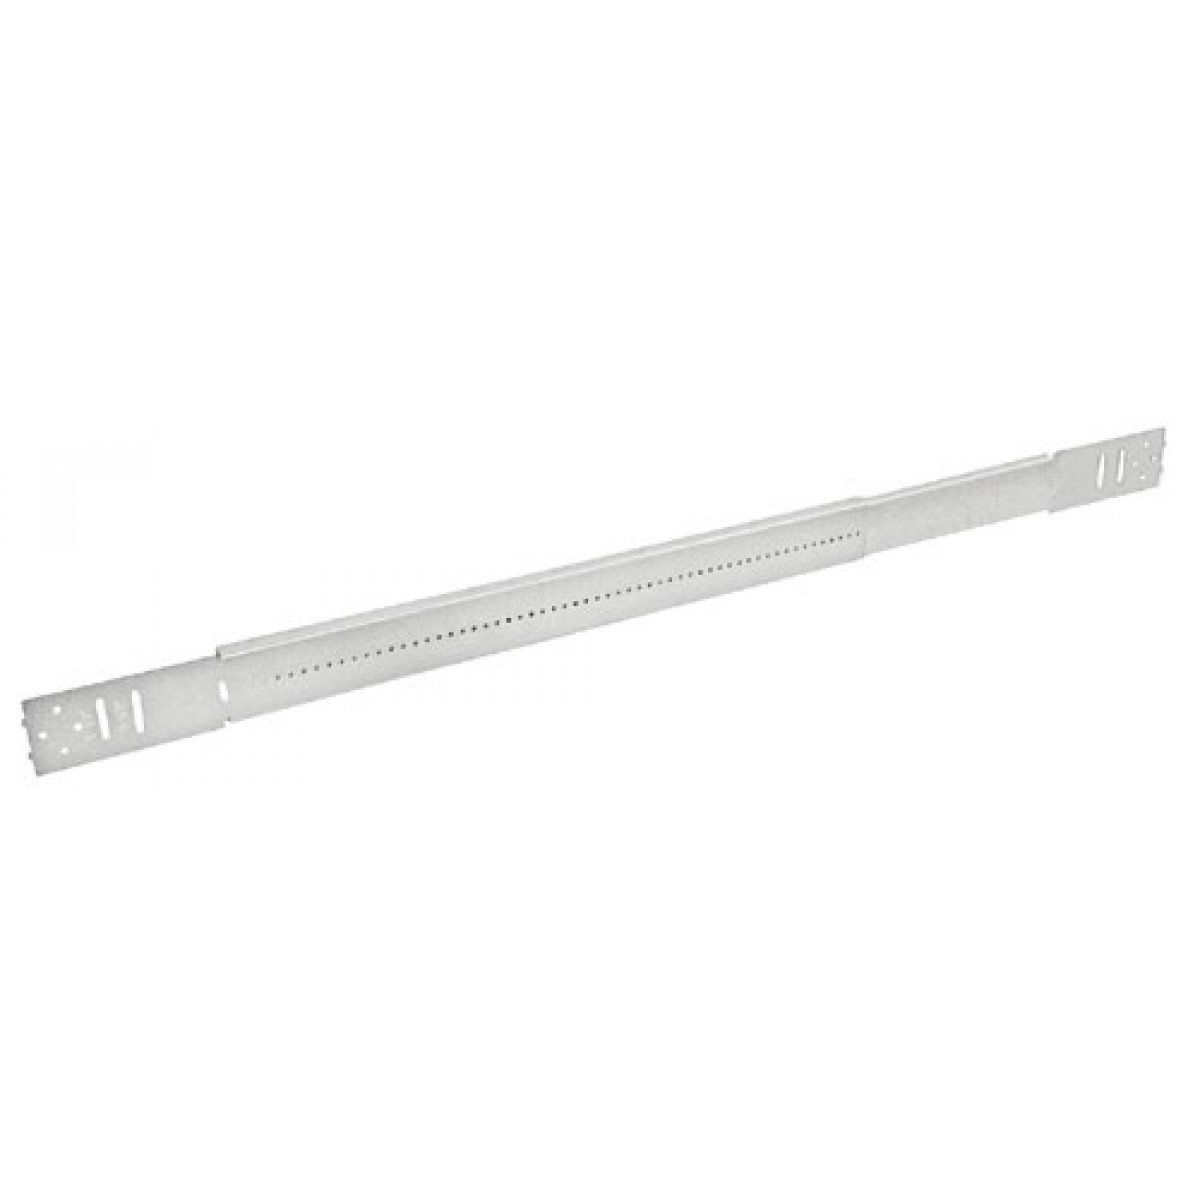 10 Pcs, Galvanized Steel Adjustable Length Box Bar Hanger, 15 to 26-1/2 In For Ceiling Joists Or Wall Studs